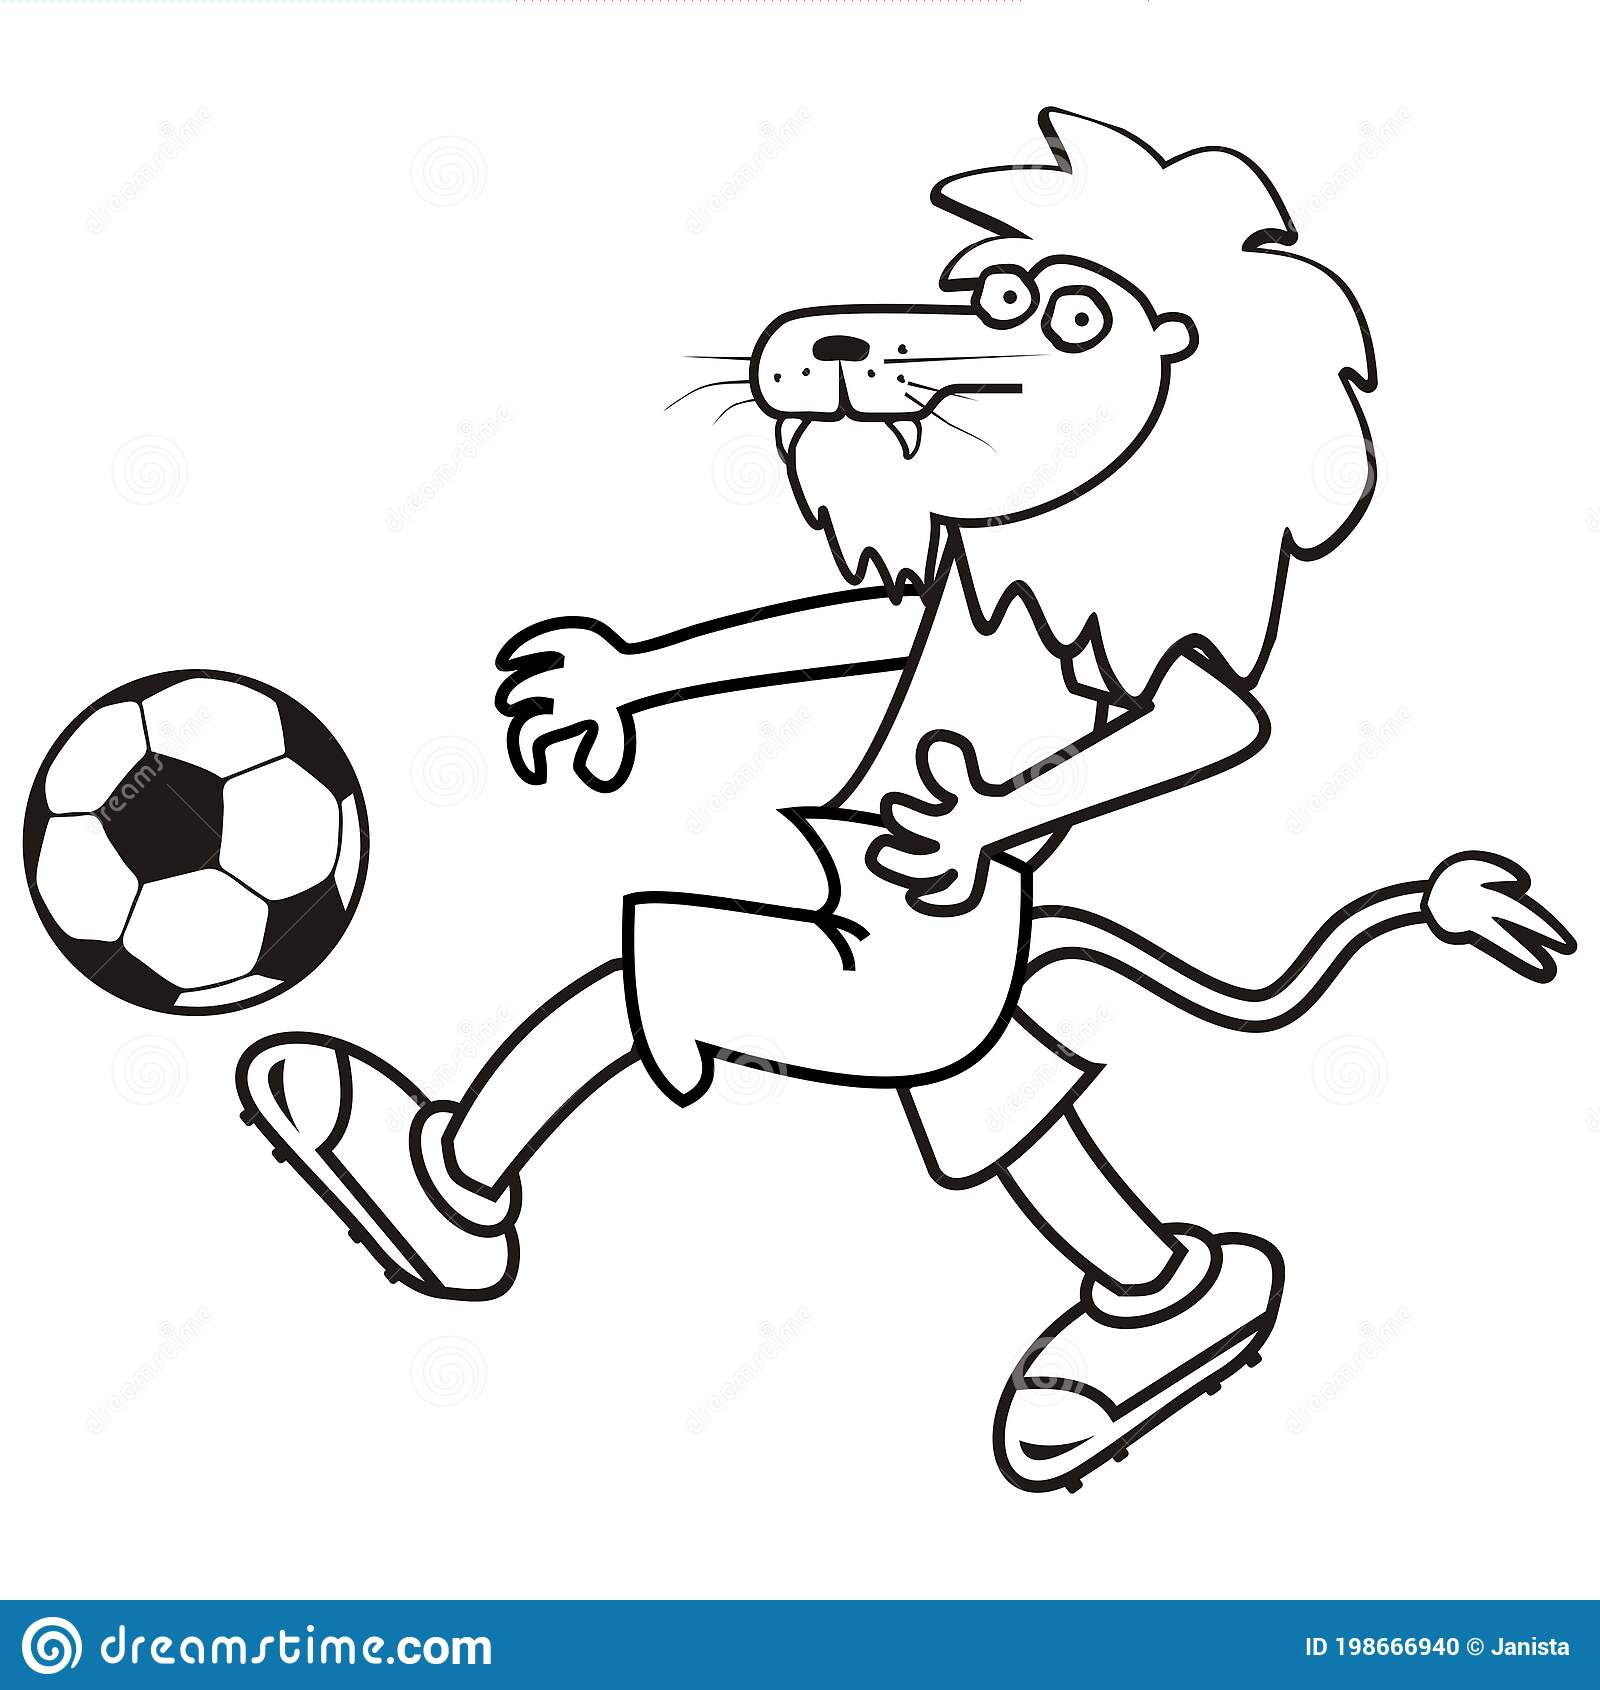 lion and soccer ball coloring stock vector illustration of competitive activity book coloring pages Soccer Ball Coloring Page